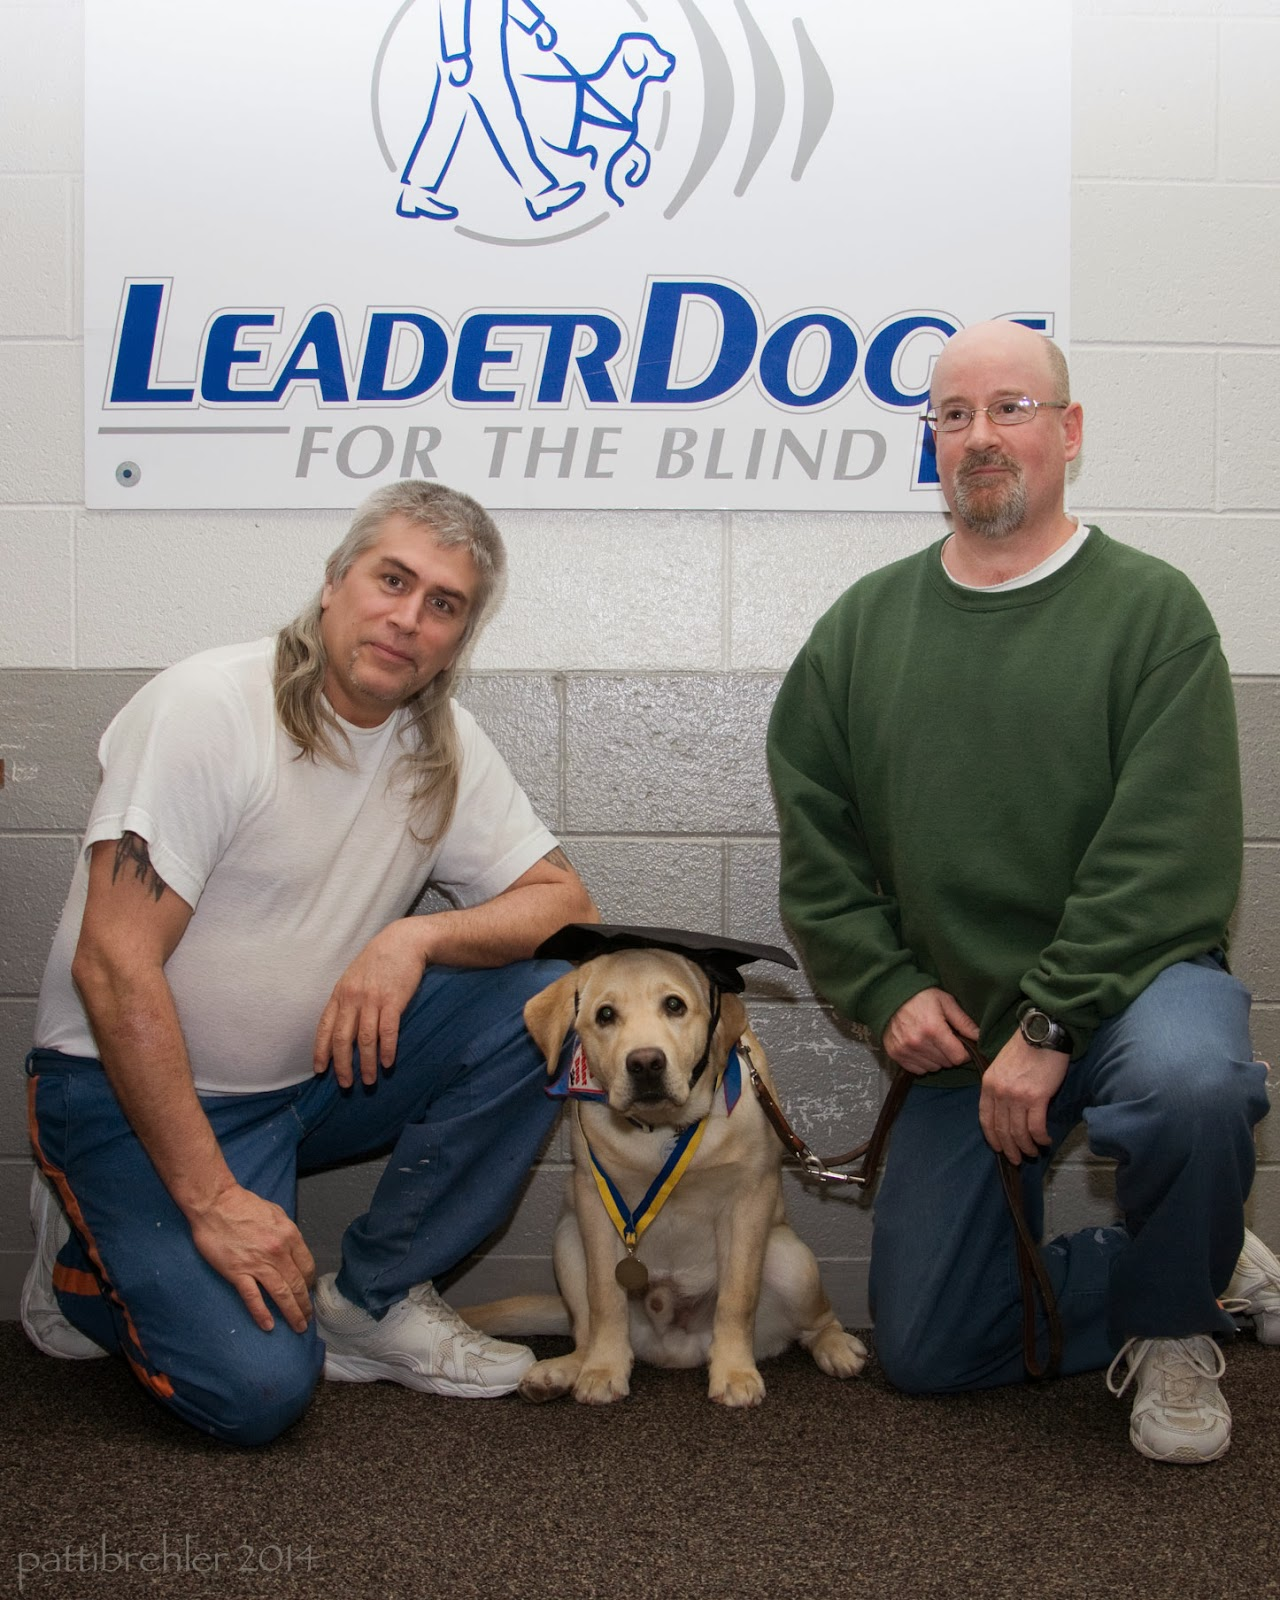 Two men are kneeling on one knee with a golden retriever between them. The man on the left is wearing a white t-shirt and blue pants. The man on the right is wearing a green sweatshirt and blue pants. Behind  them on the wall is a white poster with Leader Dogs for the Blind written on it. The dog is wearing a black graduation cap and a yellow and lbue ribbon with medal around its neck.